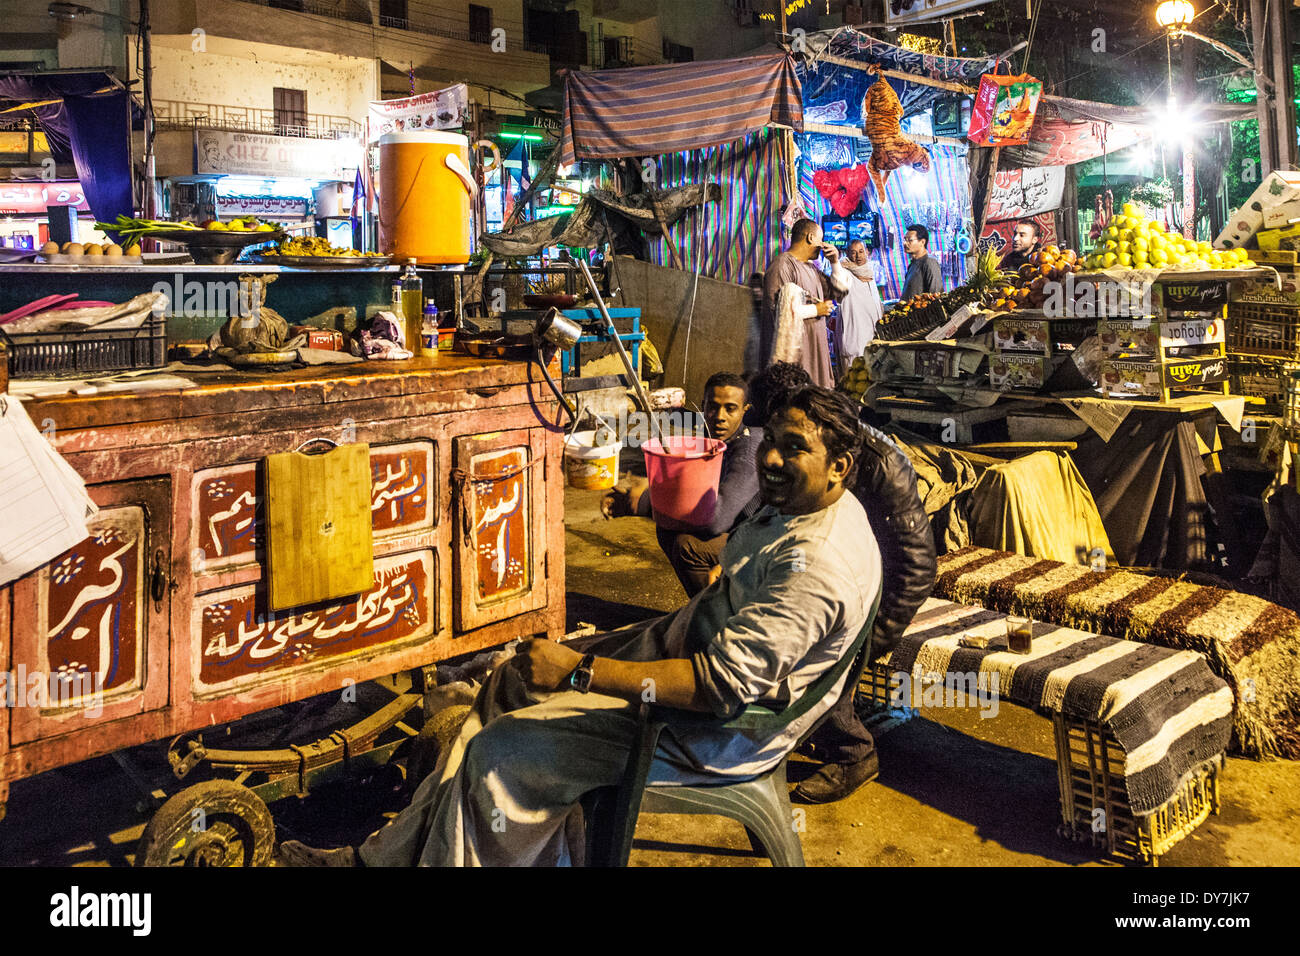 The night market or souk in Luxor, Egypt - Stock Image